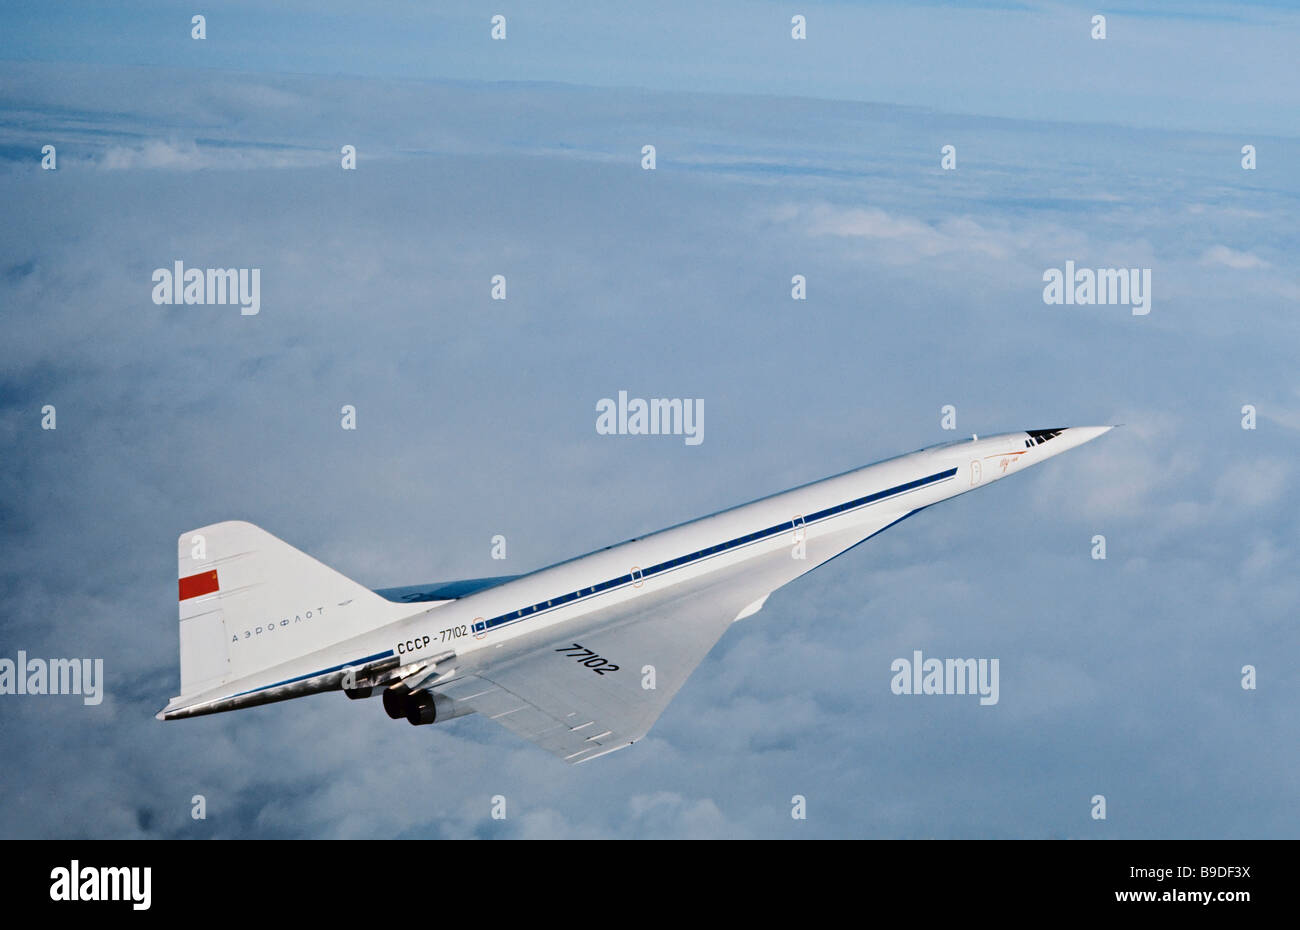 The supersonic TU 144 passenger jetliner - Stock Image